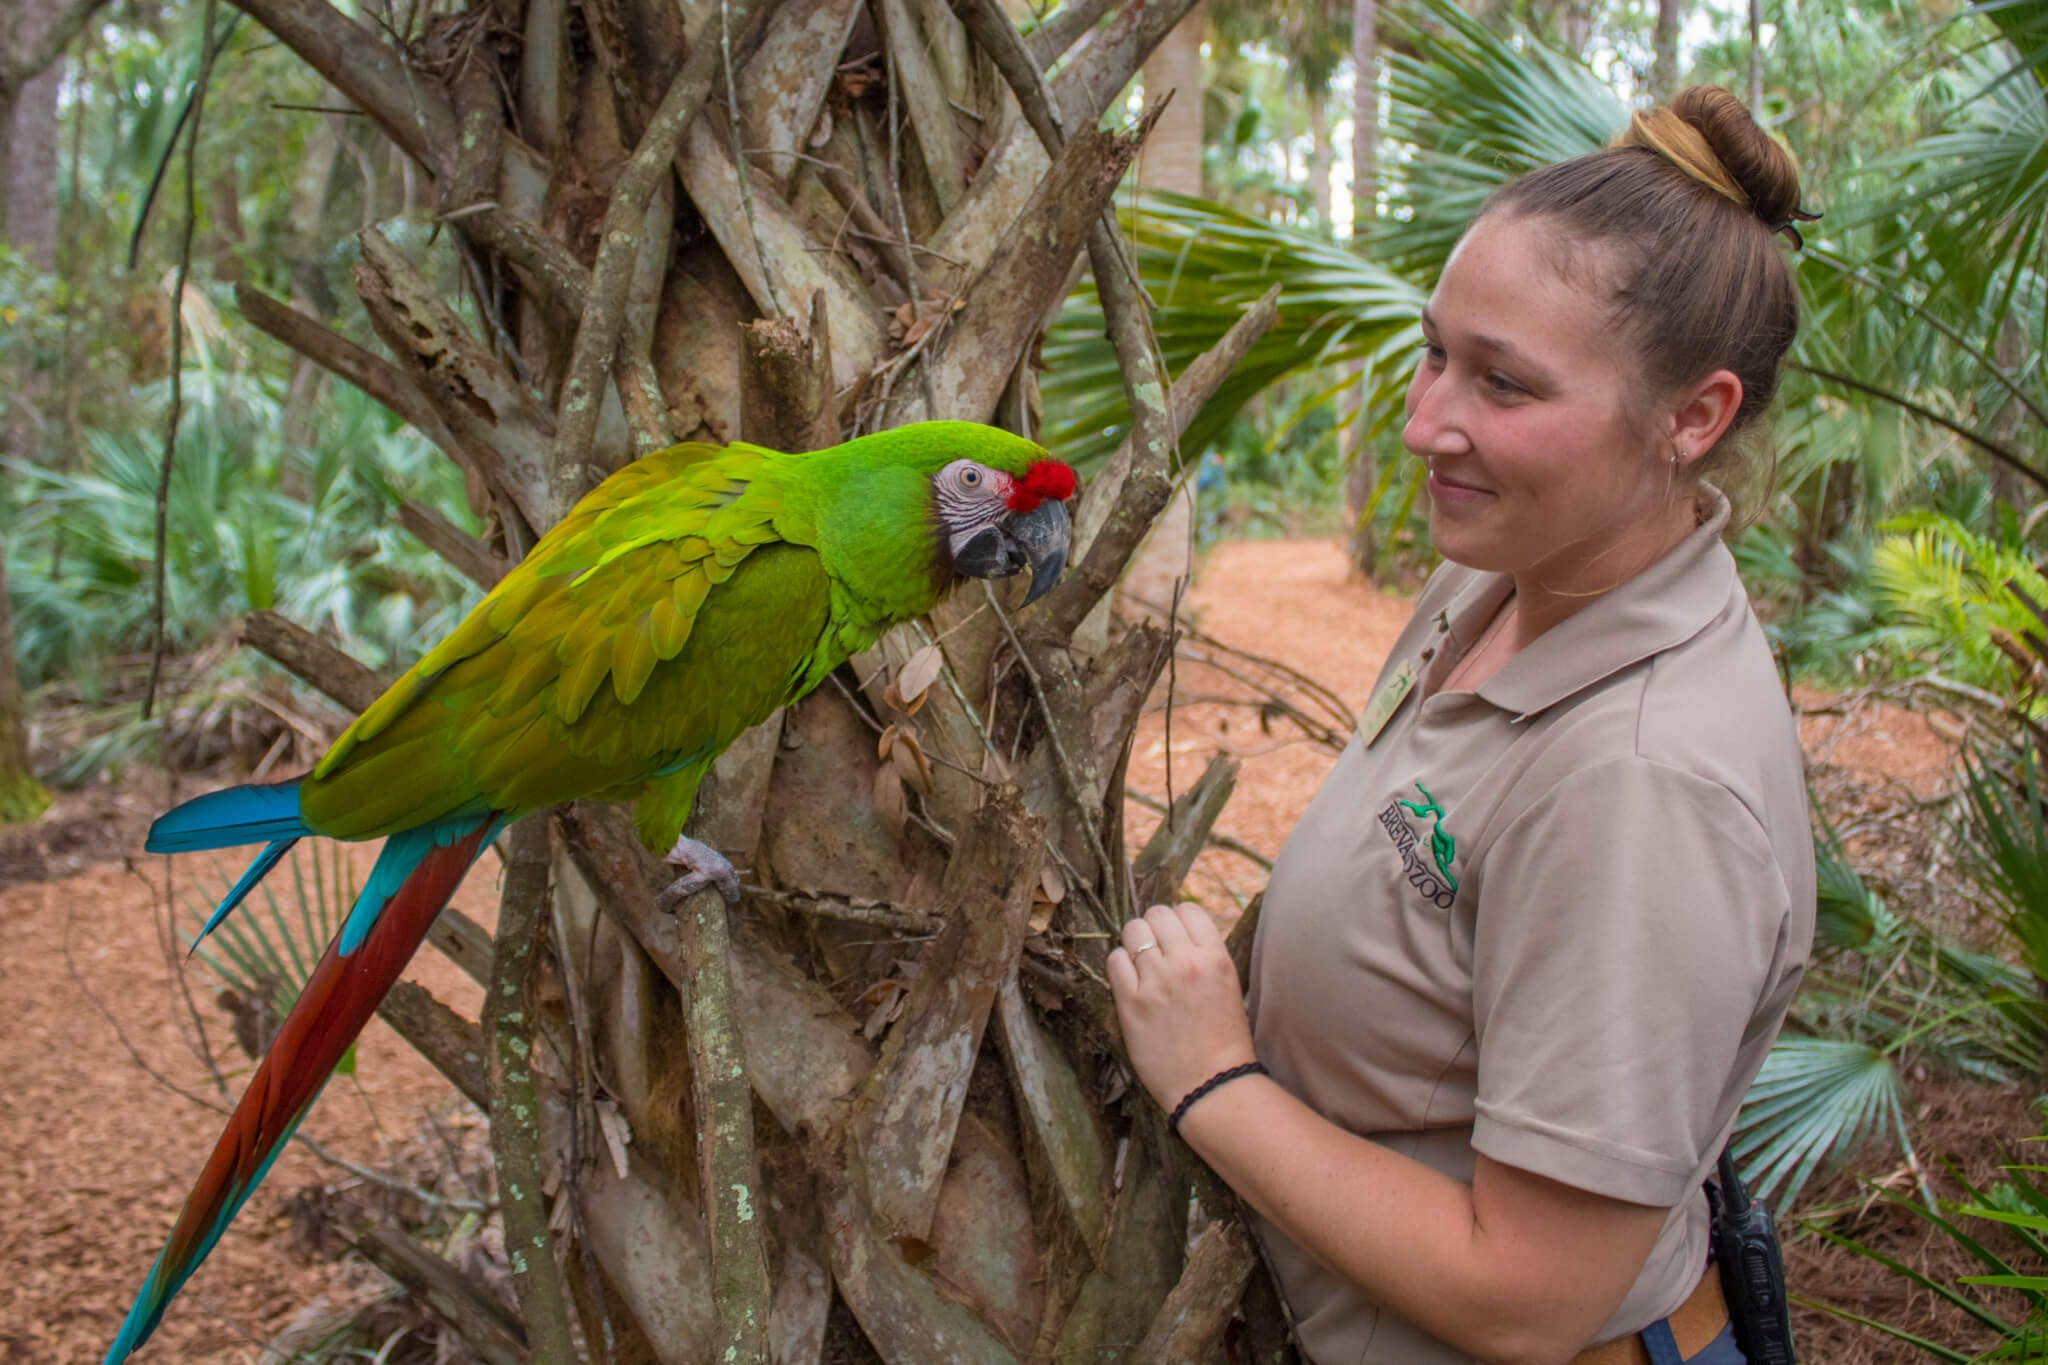 Zookeeper with macaw